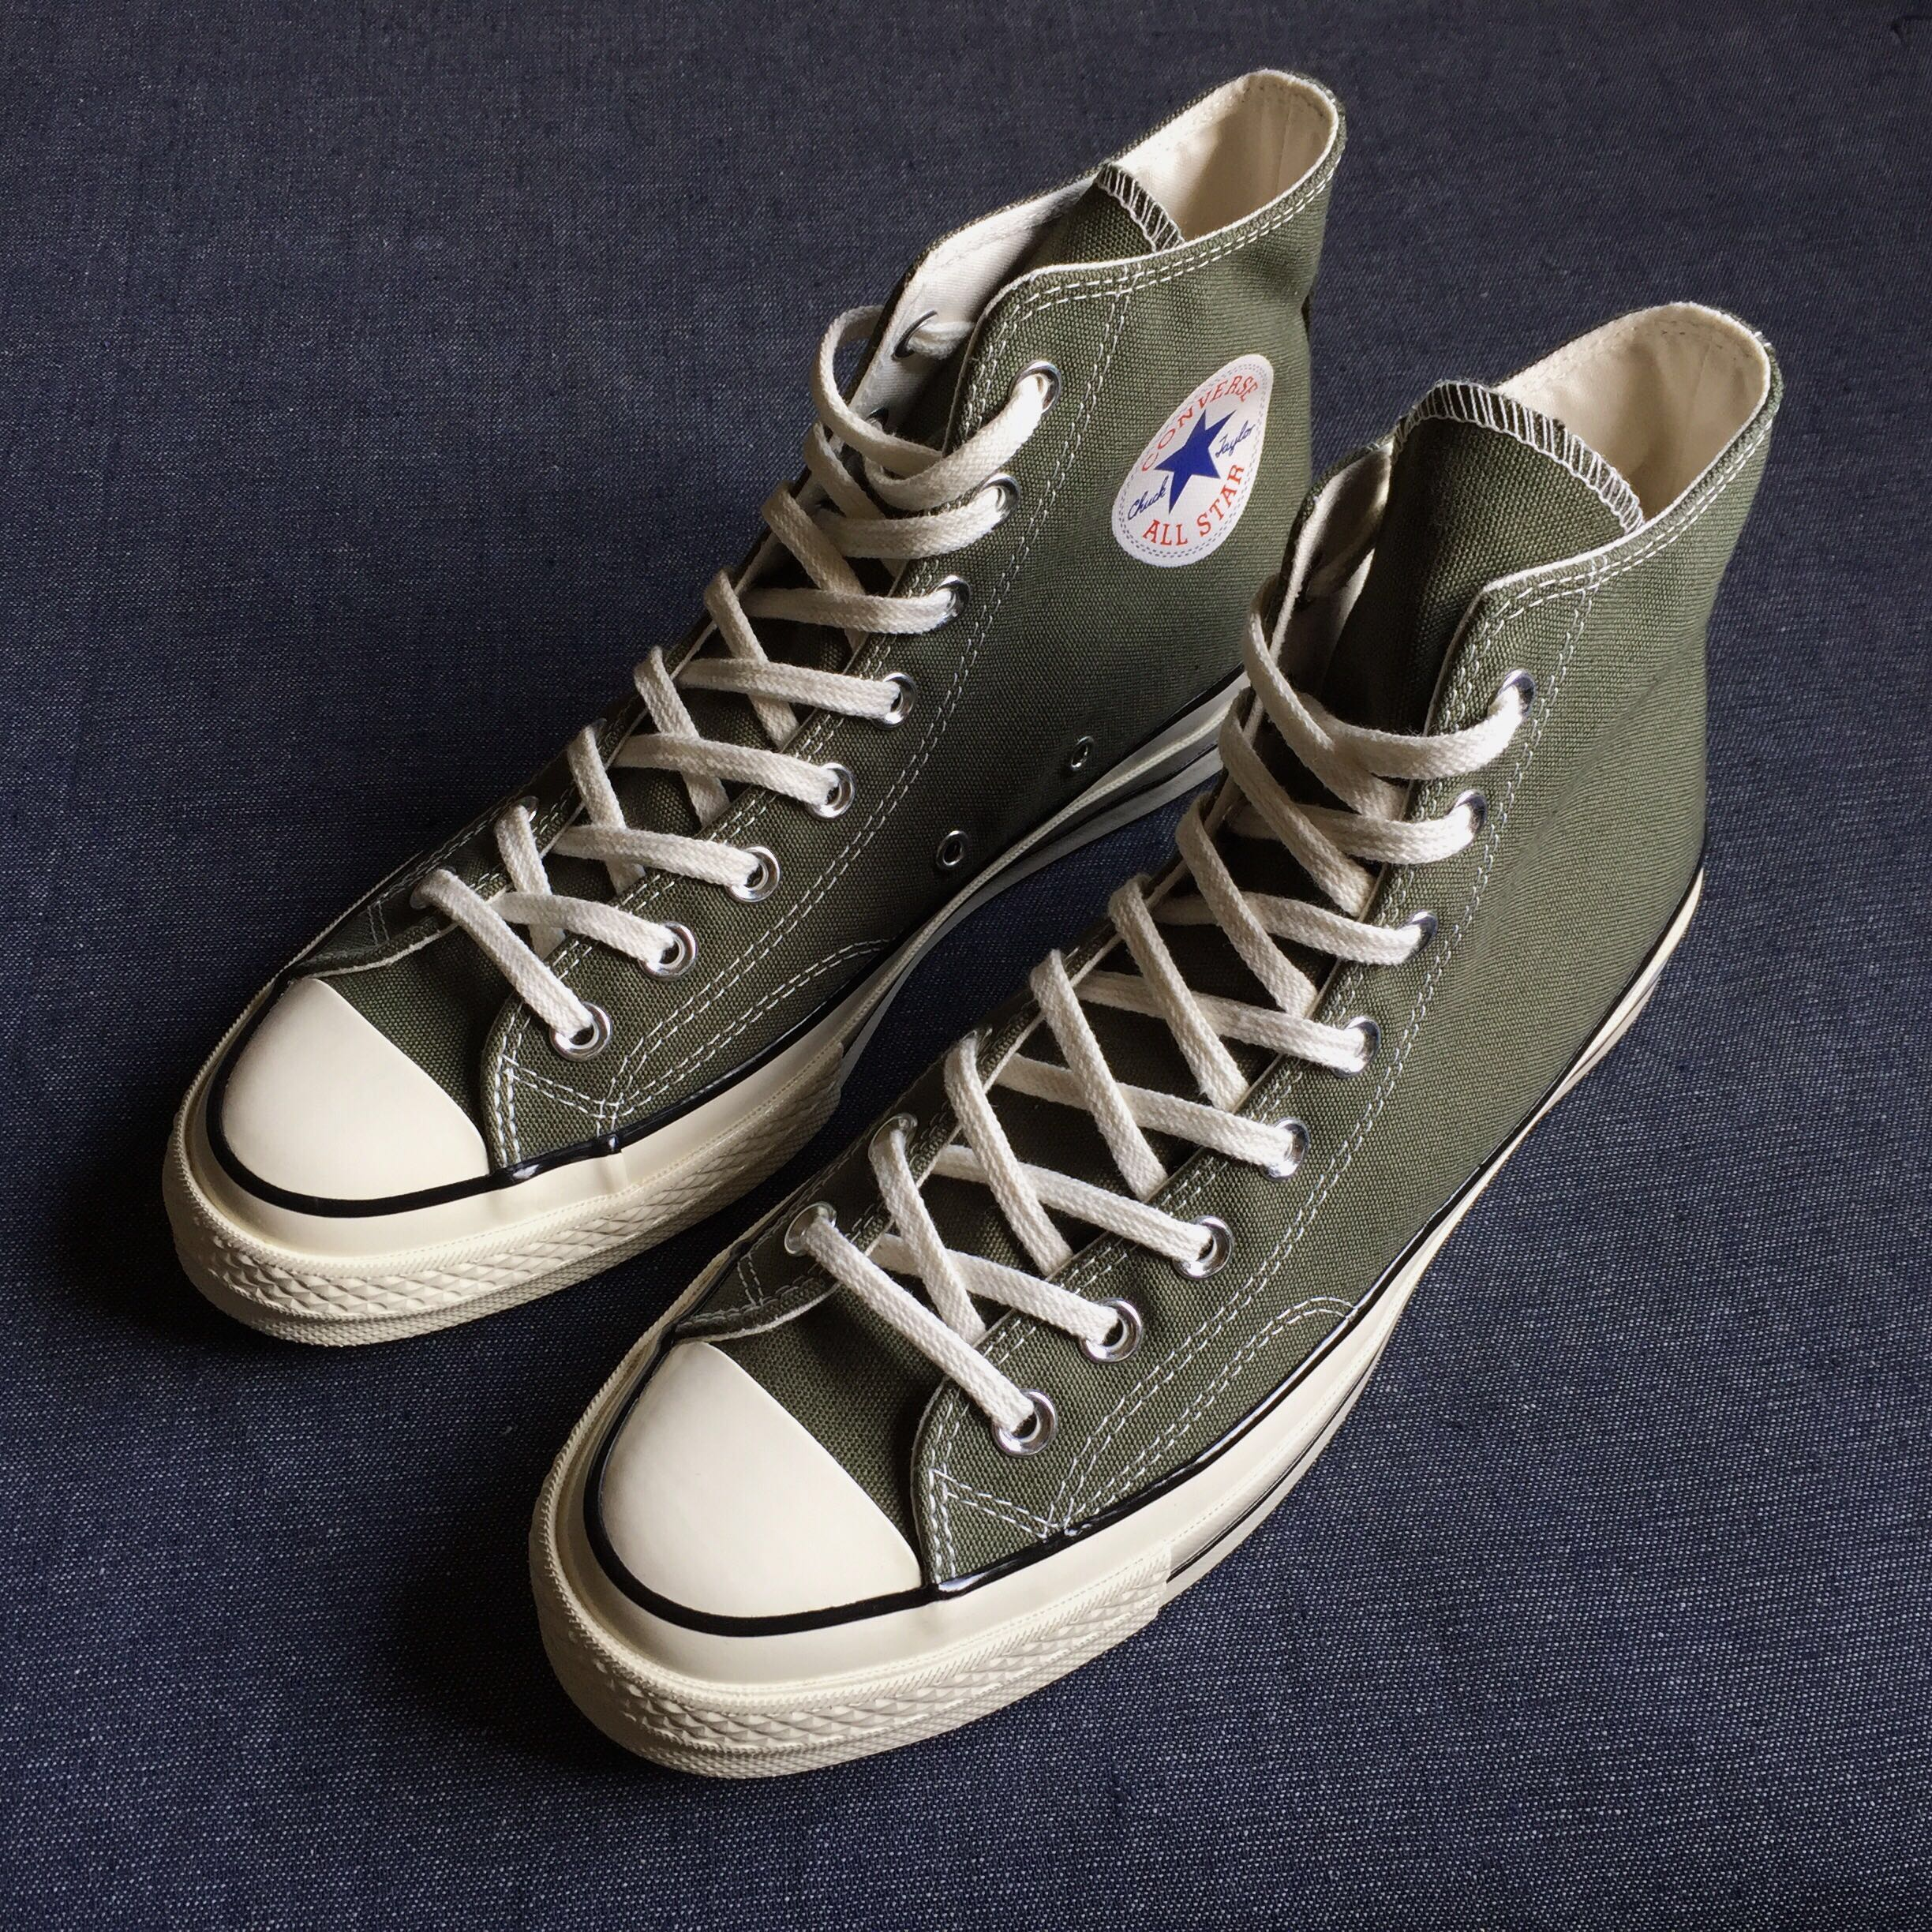 6c85932cda82 Rare Converse Chuck 70 High Top in Olive Green All Star